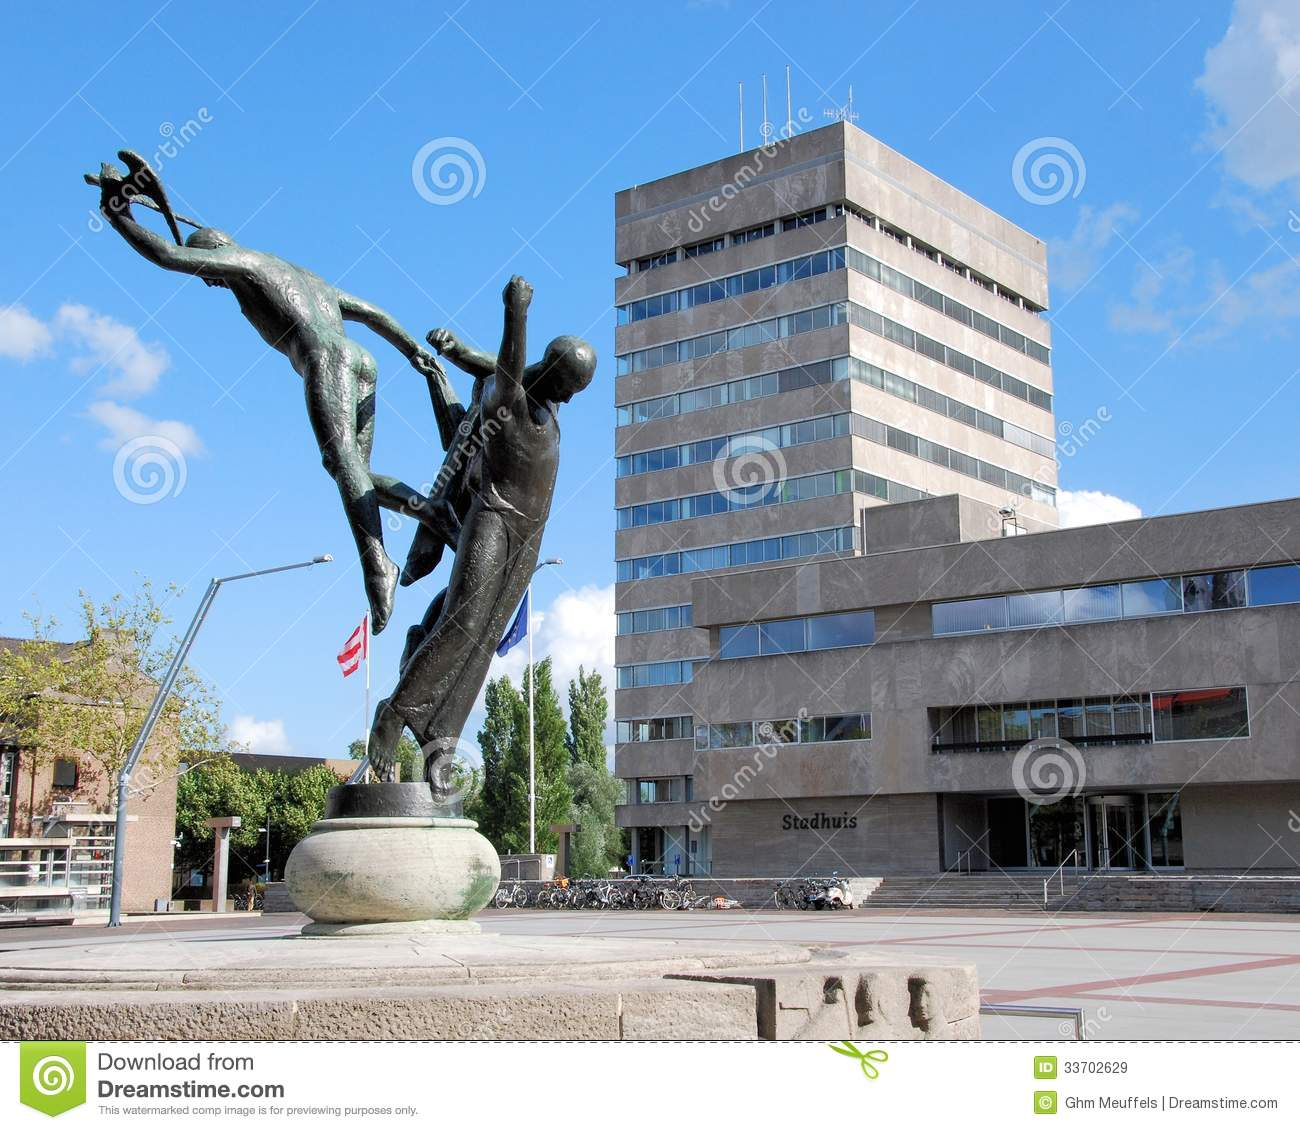 Town Hall And Statue Of Liberty, Stadhuisplein , Eindhoven.